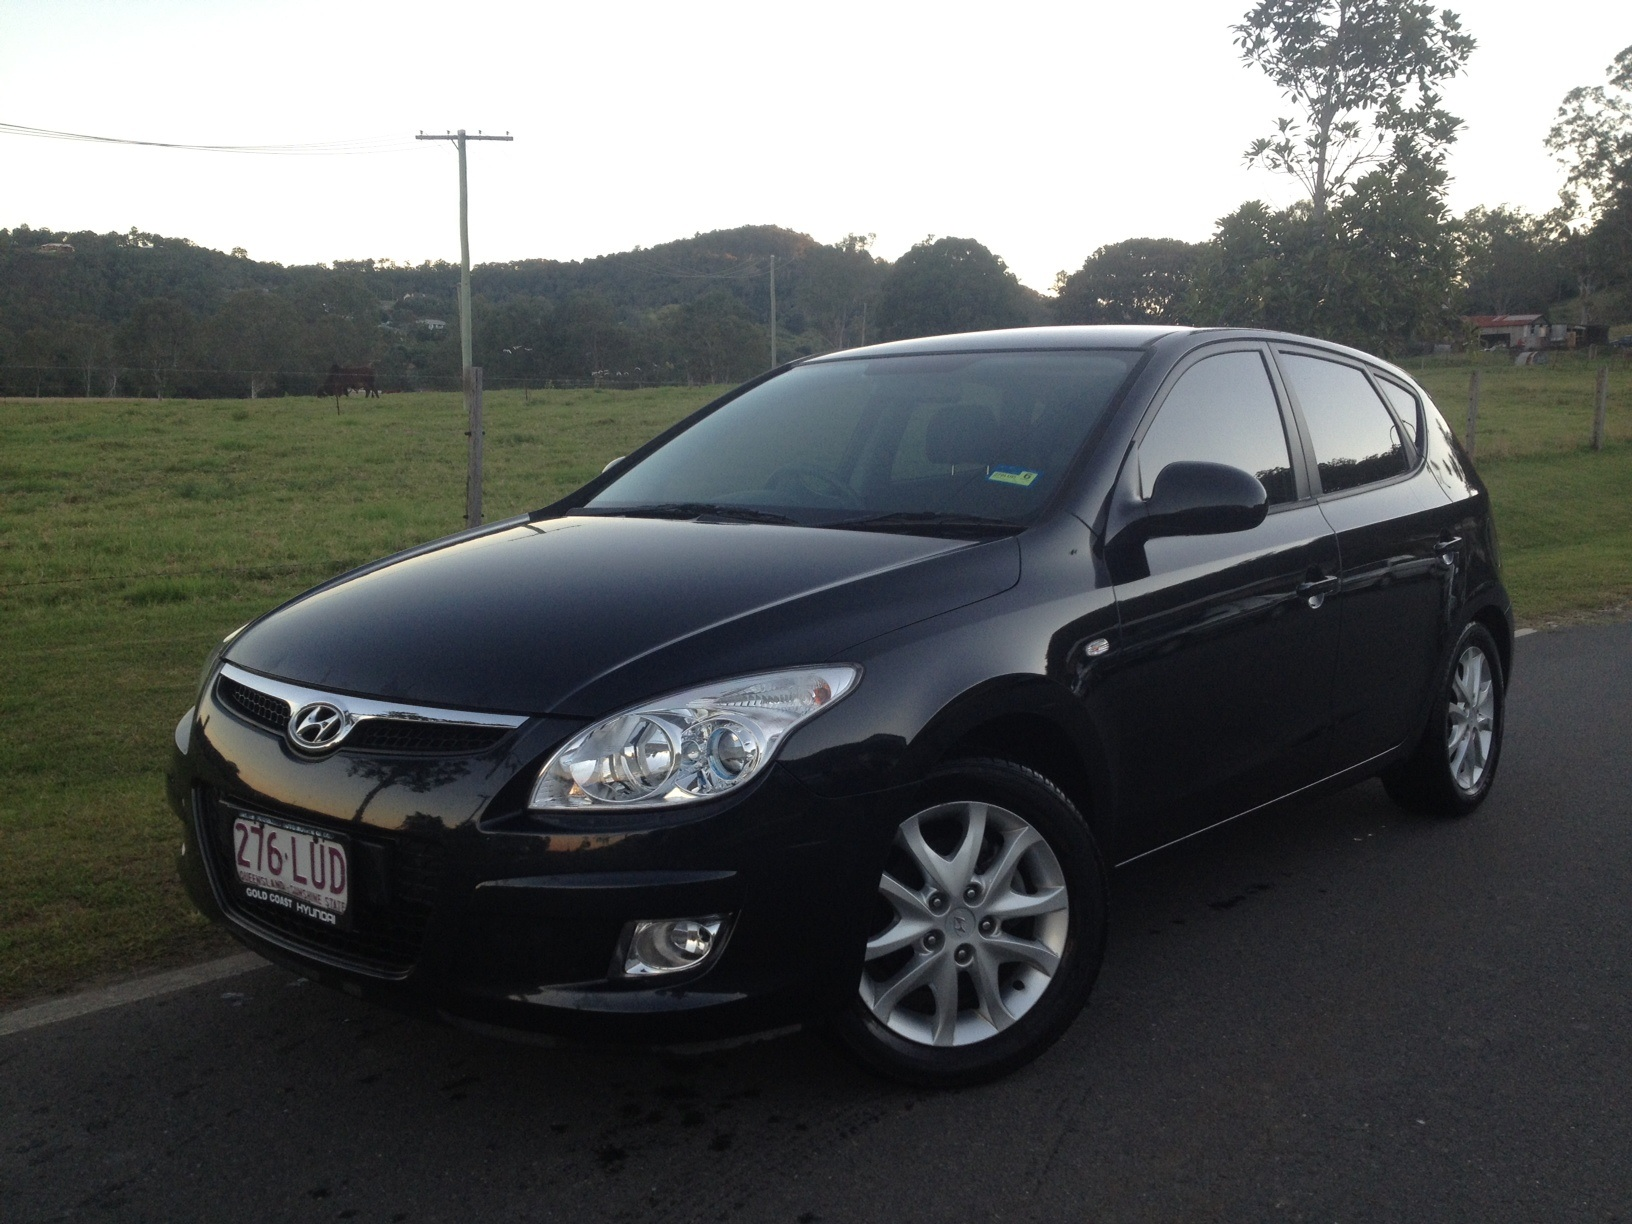 2009 hyundai i30 slx fd my09 for sale qld brisbane south. Black Bedroom Furniture Sets. Home Design Ideas